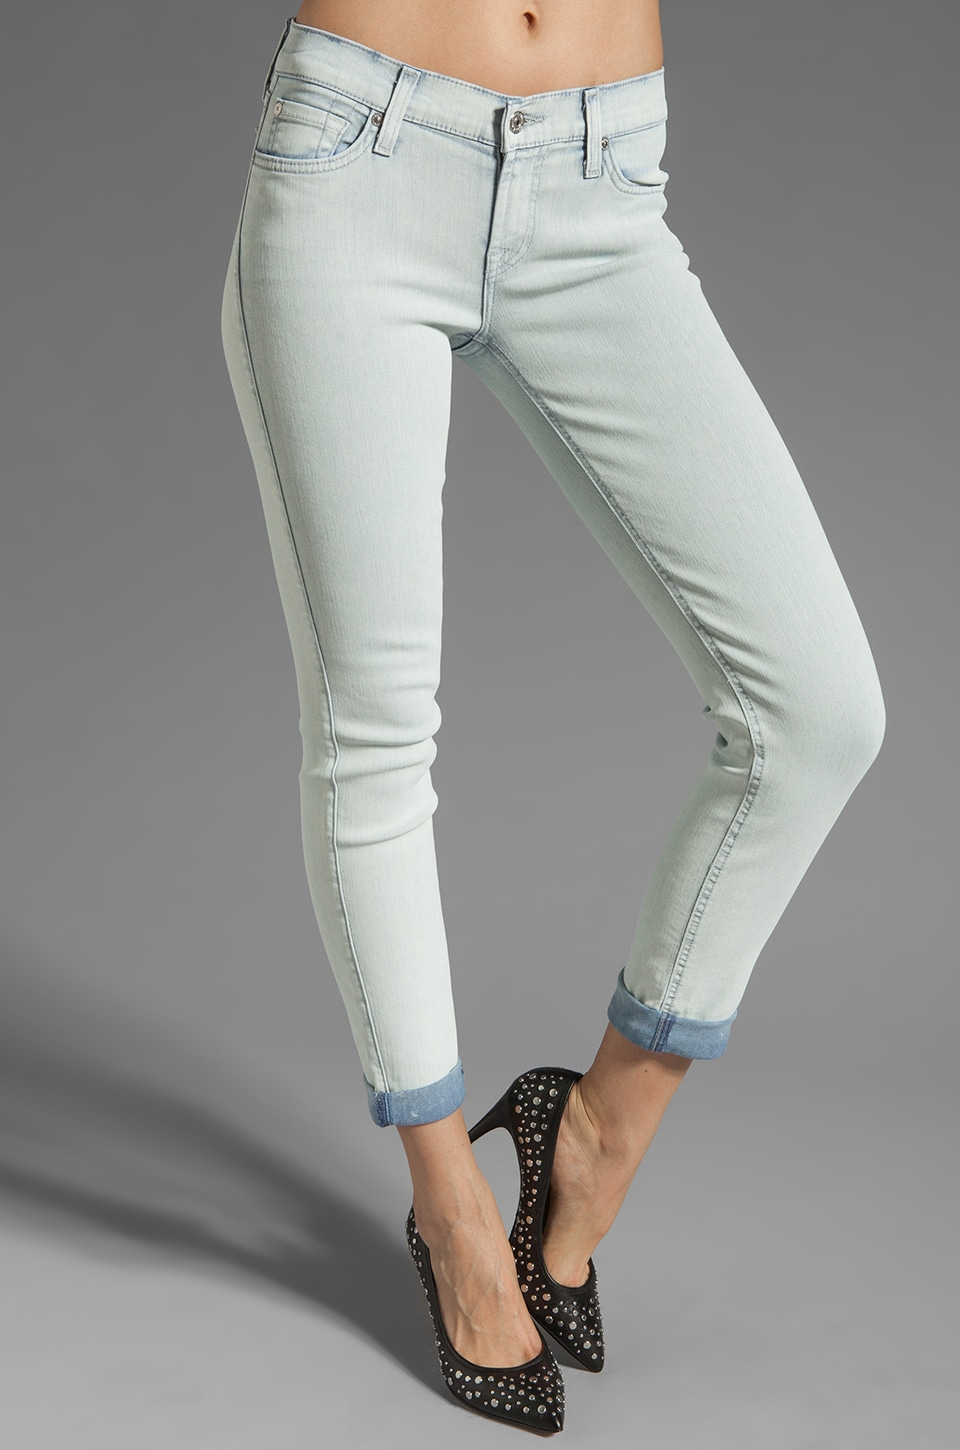 7 For All Mankind The Slim Cigarette in White Washed Denim